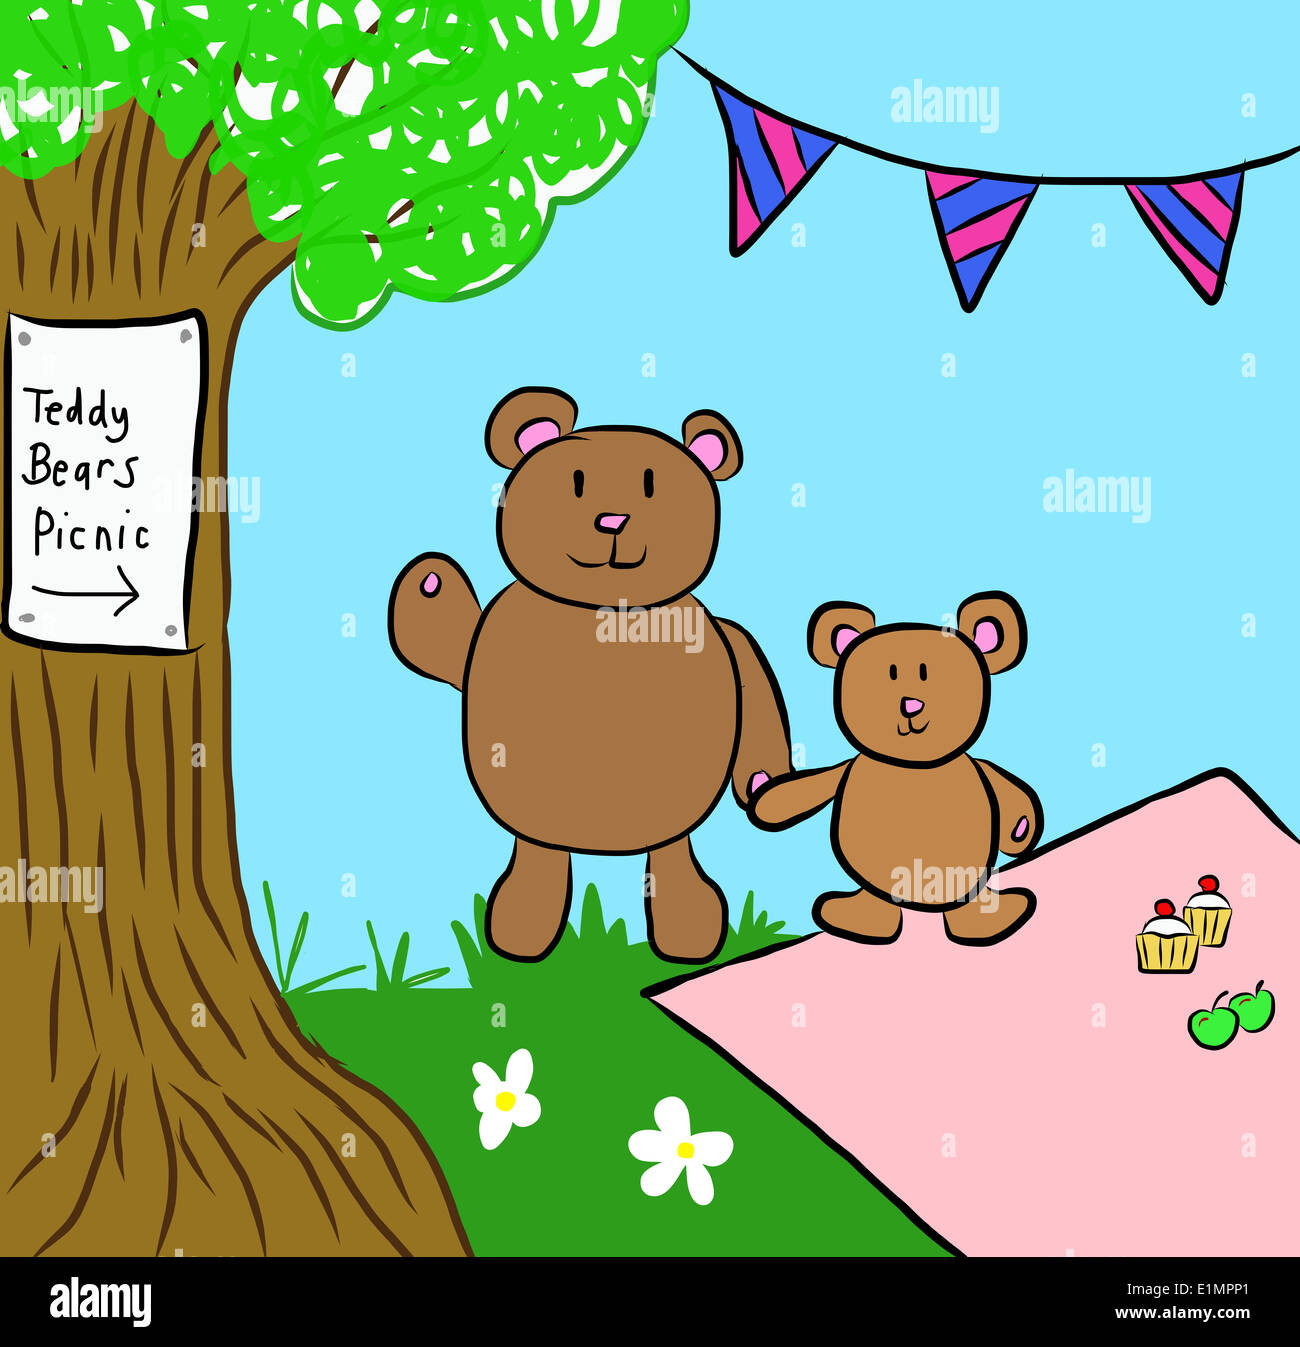 Illustration Of A Teddy Bears Picnic Stock Photo 69913033 Alamy